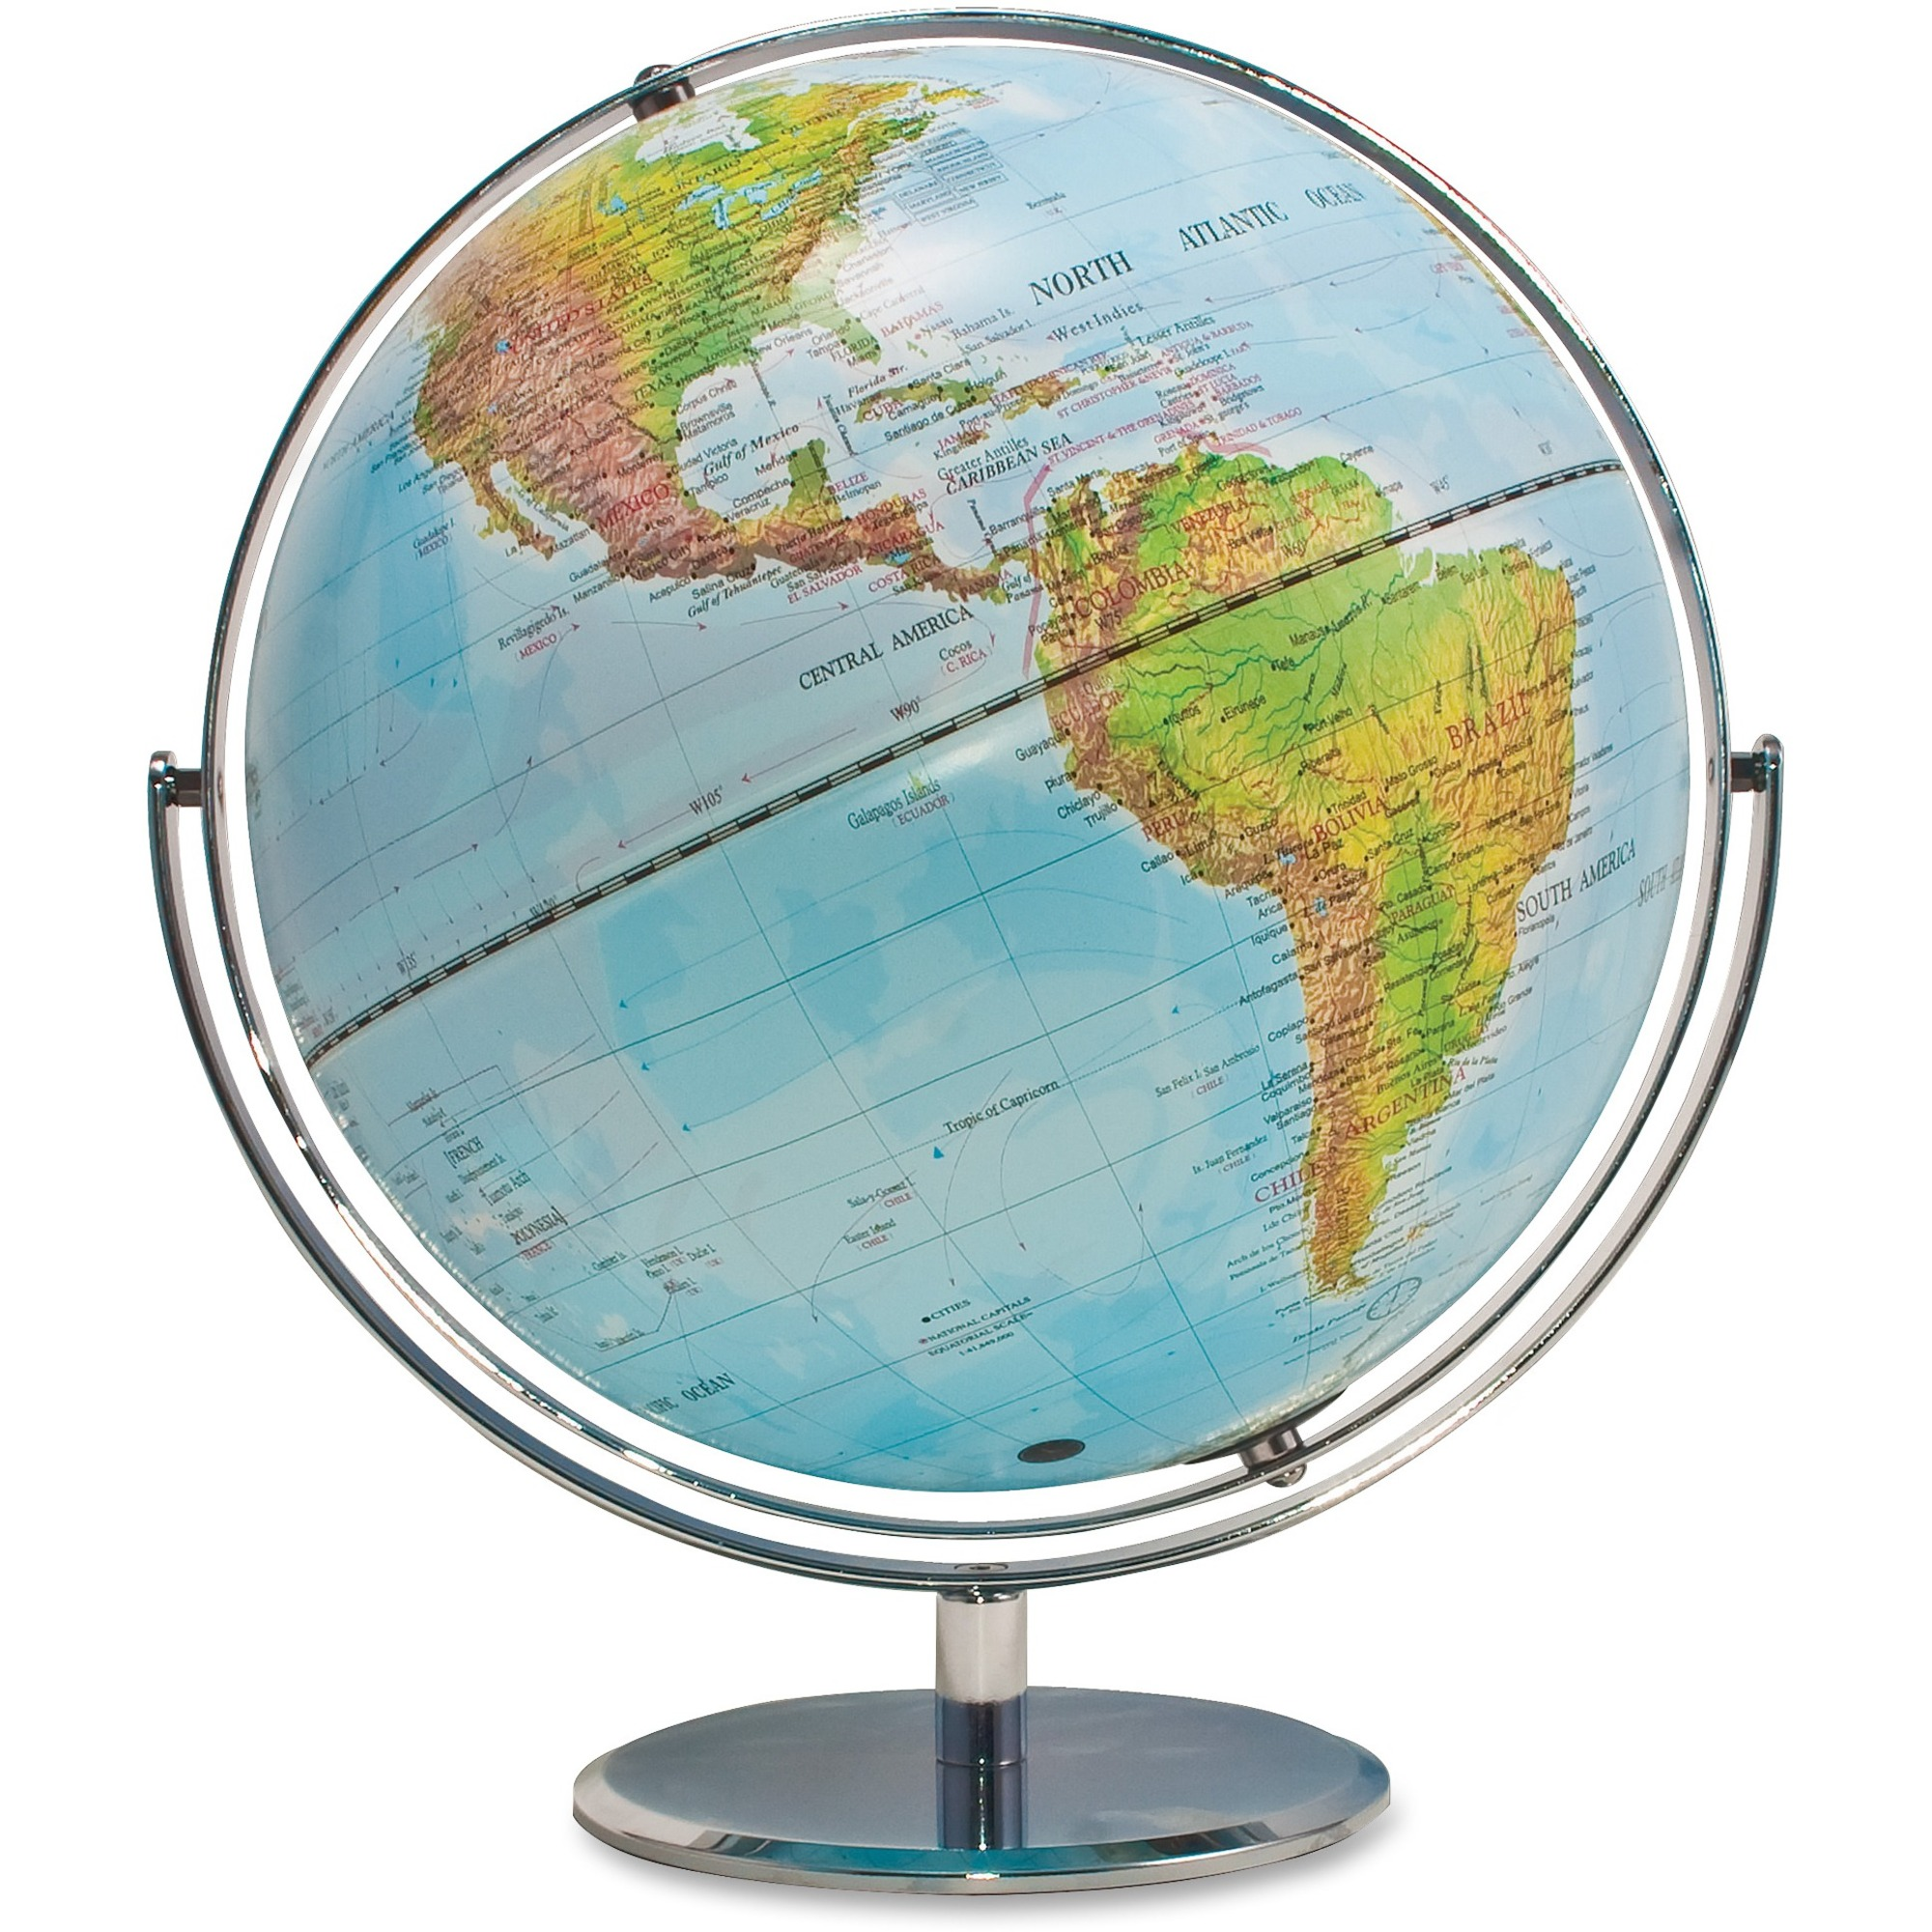 Advantus physicalpolitical world globe madill the office company advantus physicalpolitical world globe world 12 diameter gumiabroncs Images